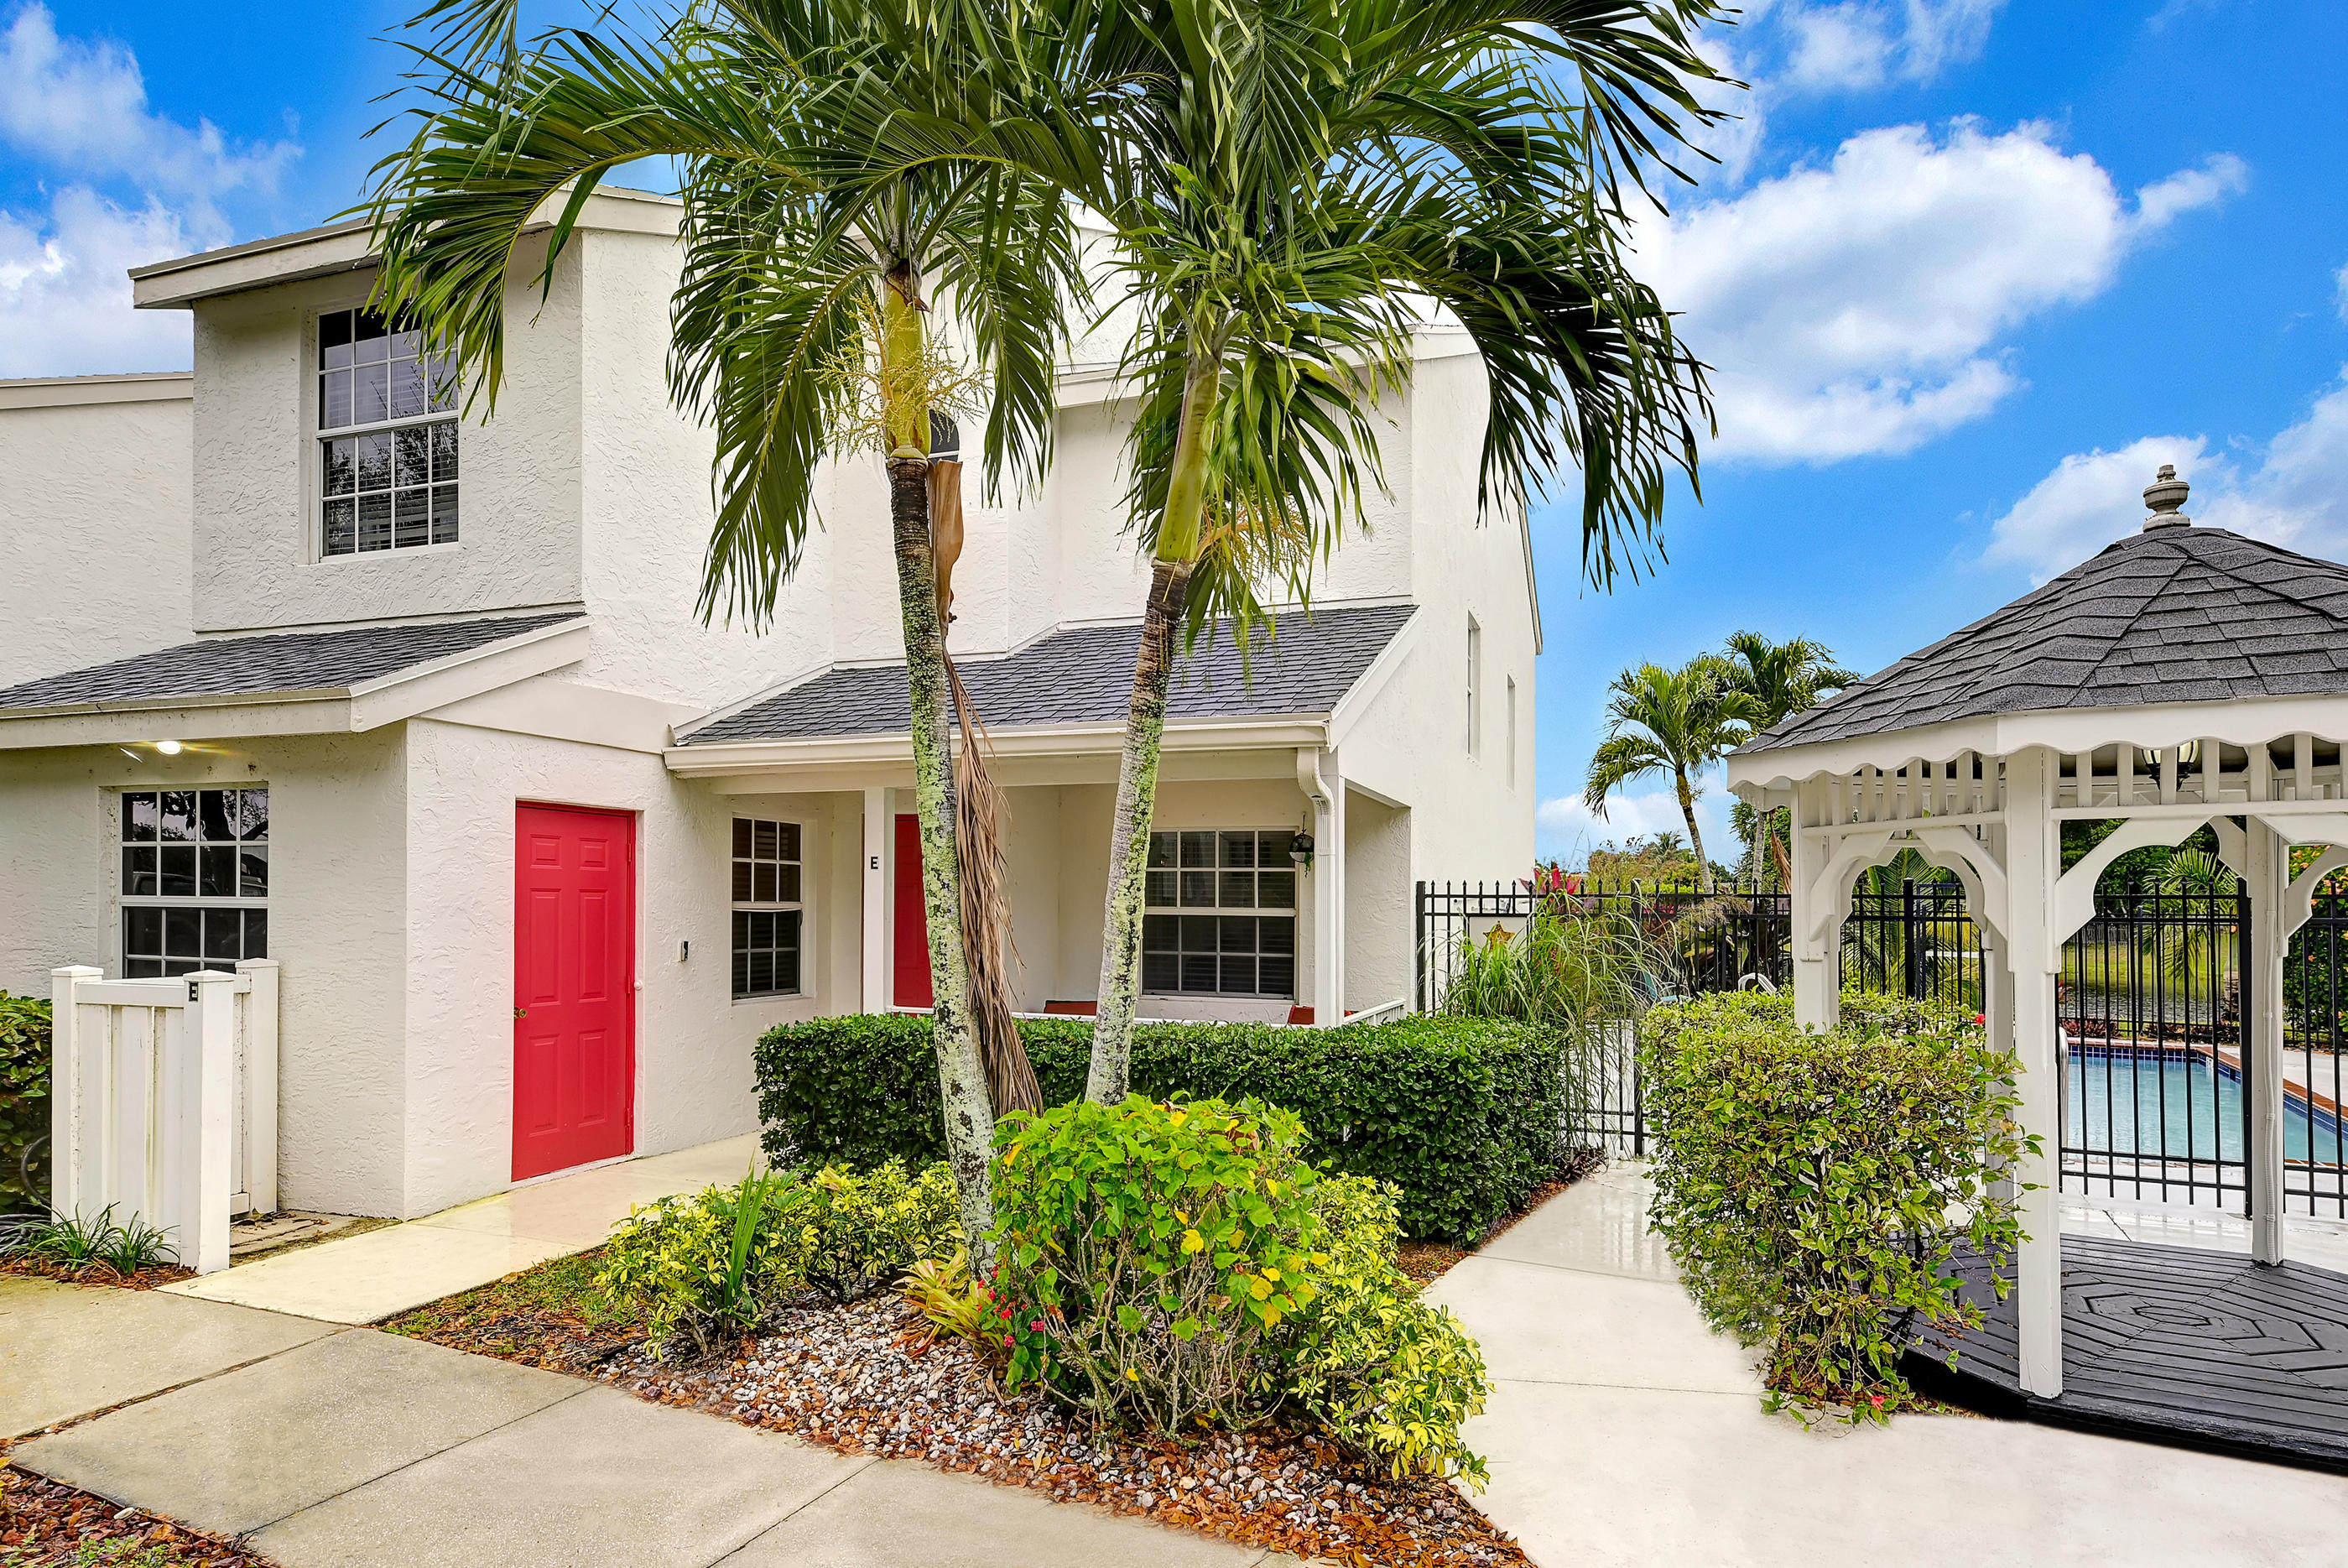 12554 Westhampton Circle E #E - 33414 - FL - Wellington